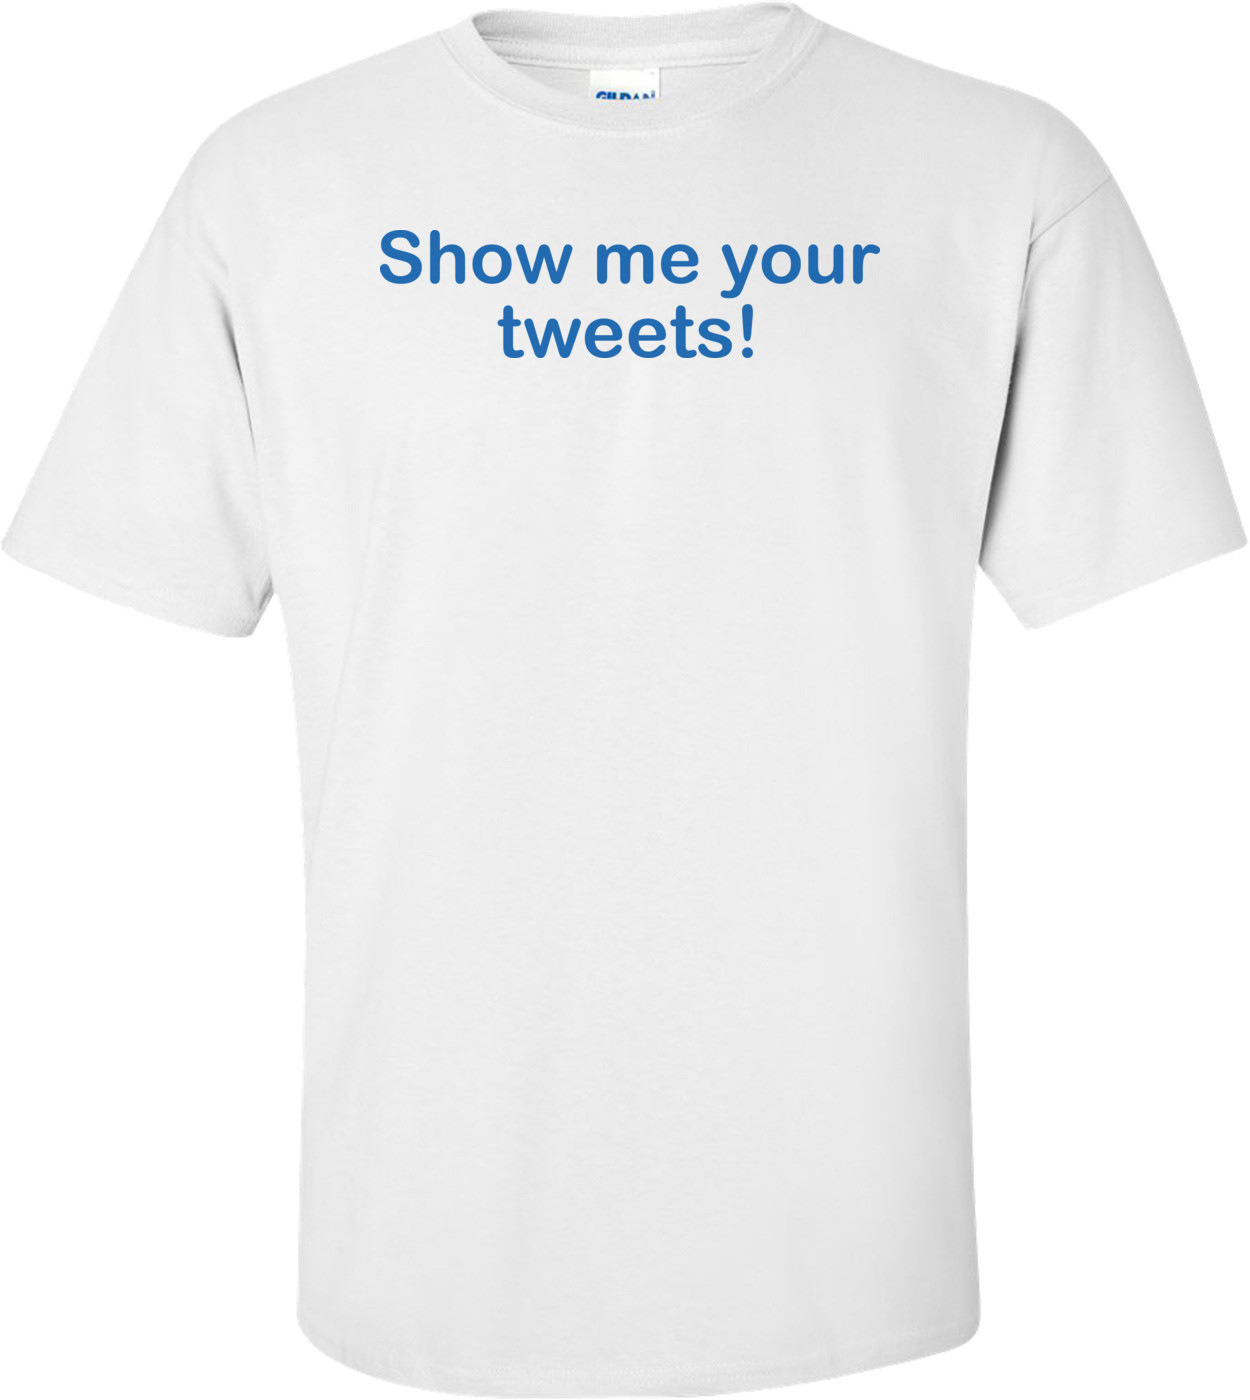 Show Me Your Tweets T-shirt